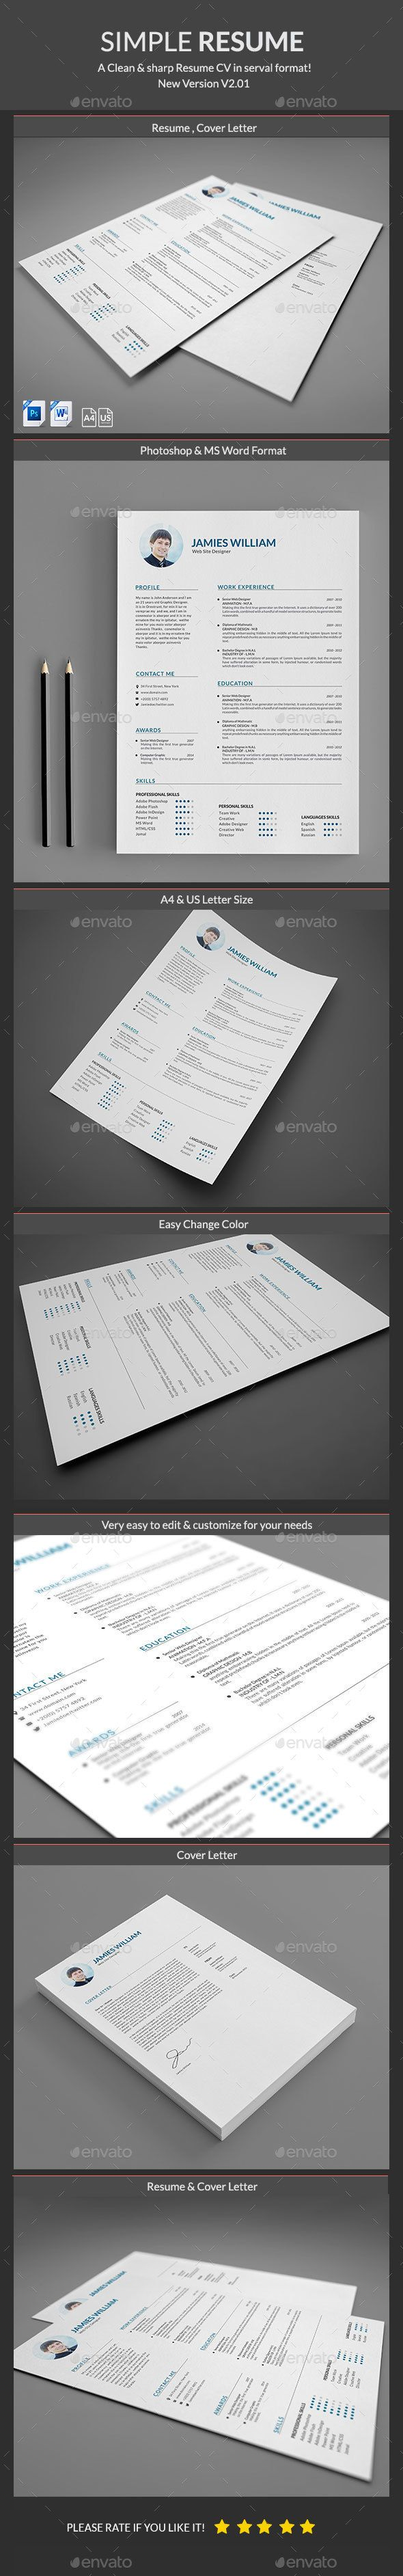 34 Best Clean Resume Designs Images On Pinterest Resume Ideas